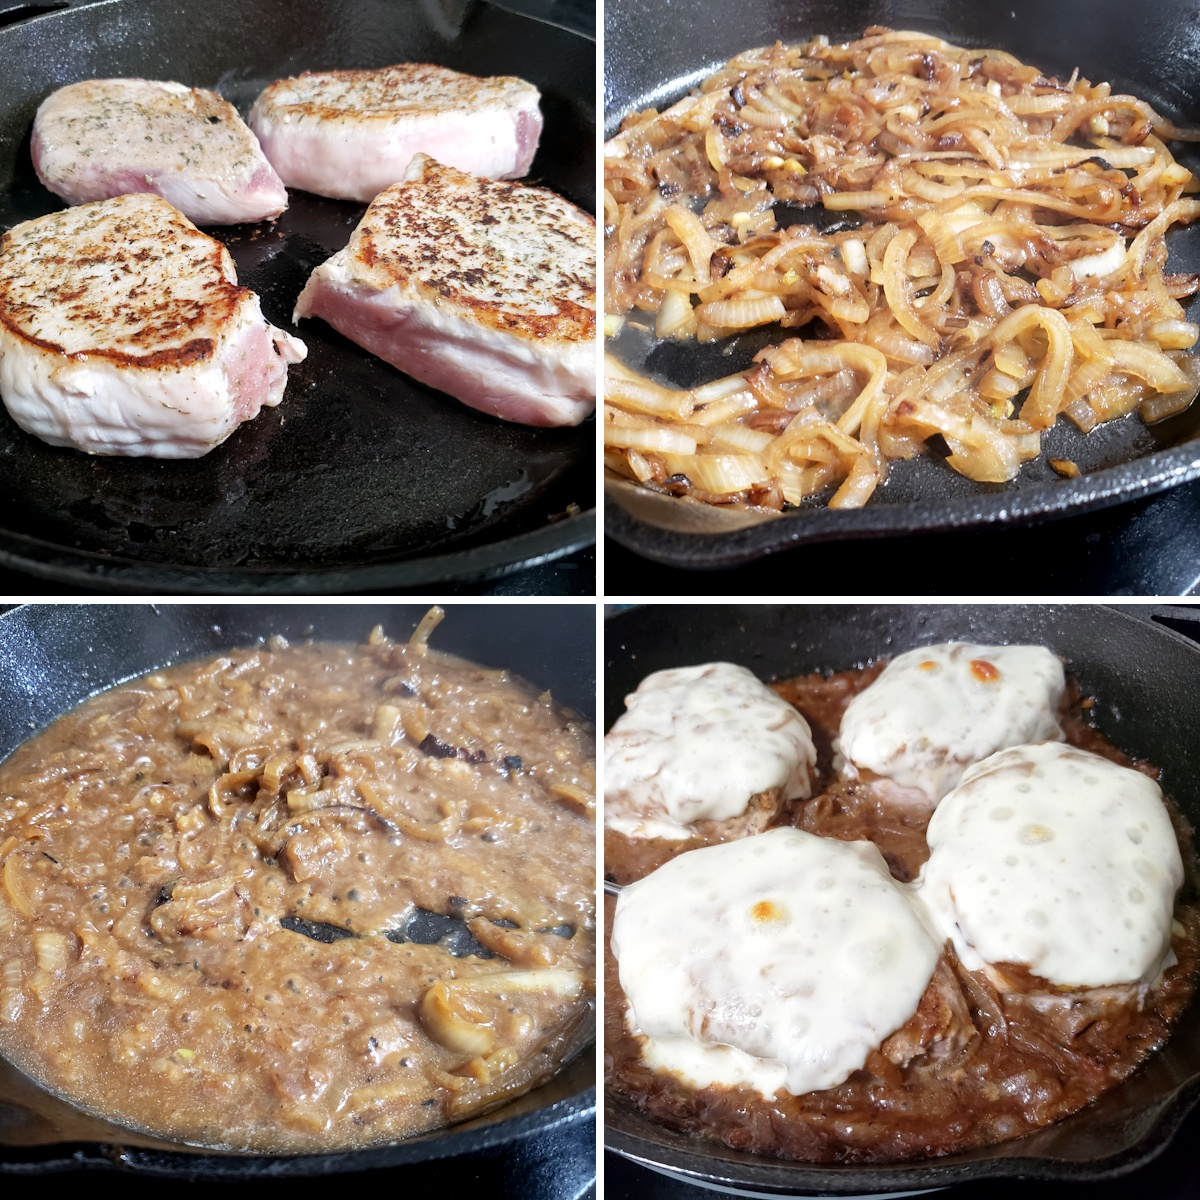 Pork chops and onions cooking in a cast iron pan.